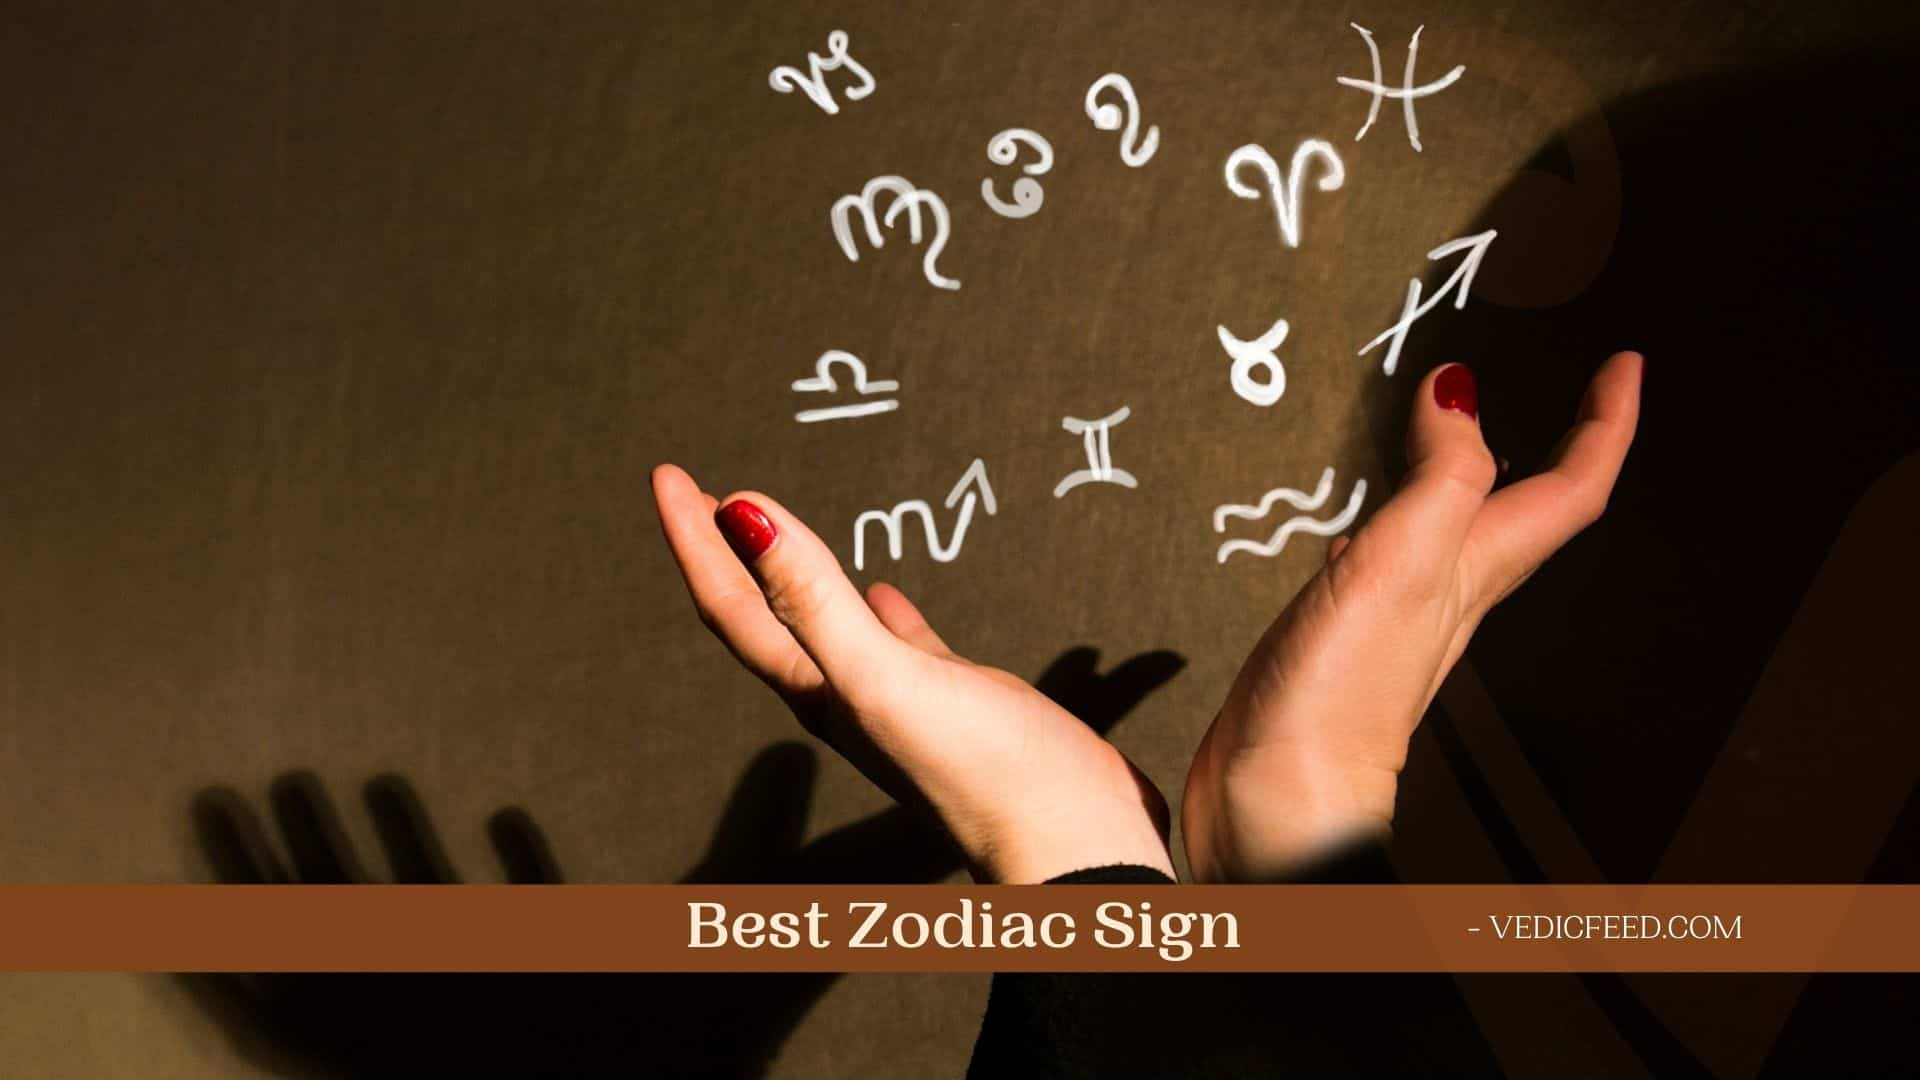 Best Zodiac Sign according to Vedic Astrology